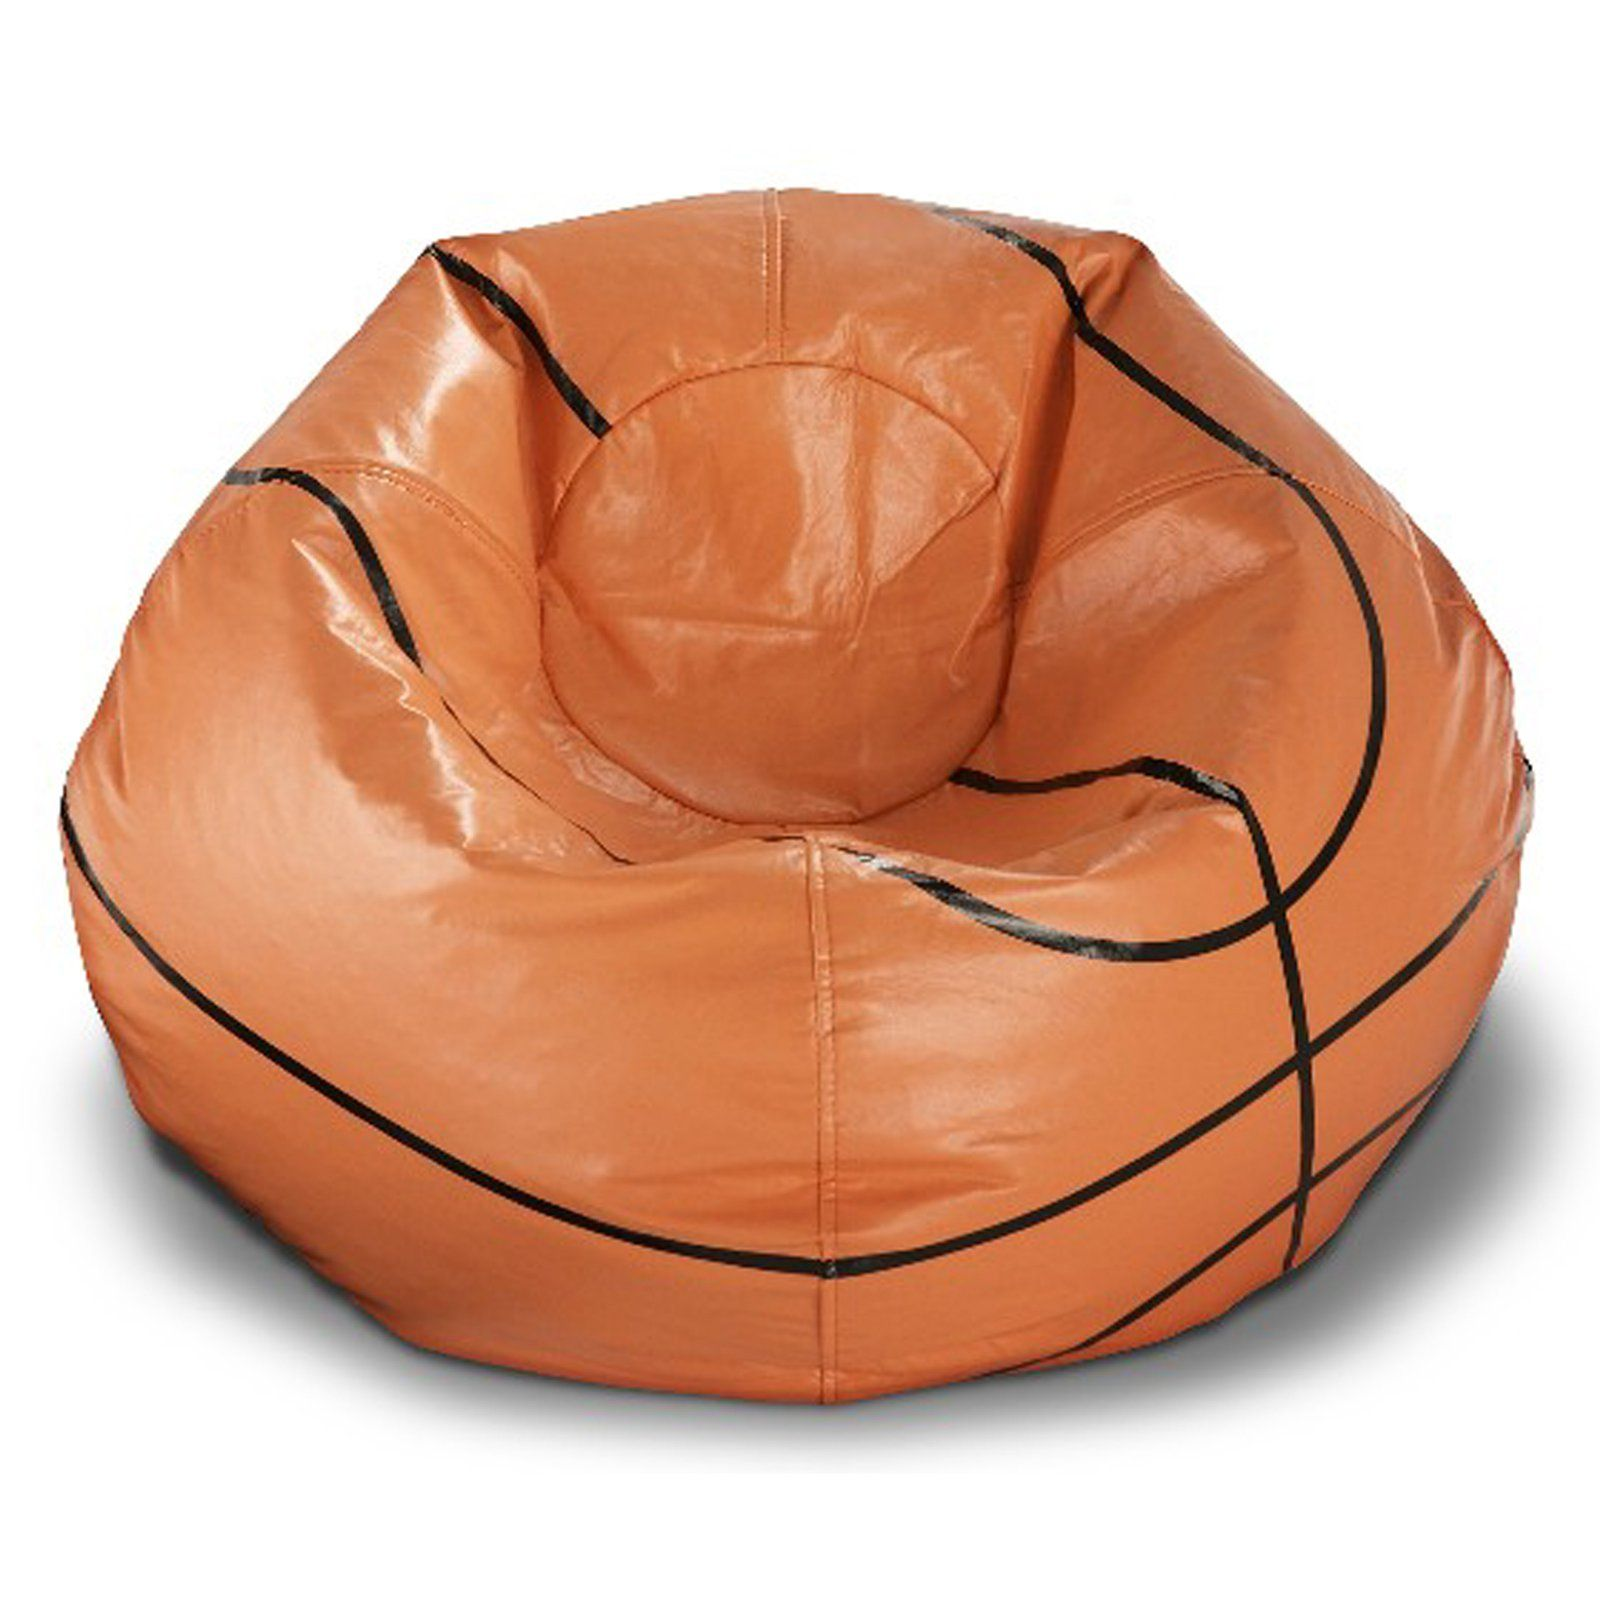 Basketball Chairs Ace Casual Furniture Vinyl Basketball Bean Bag Chair In 2019